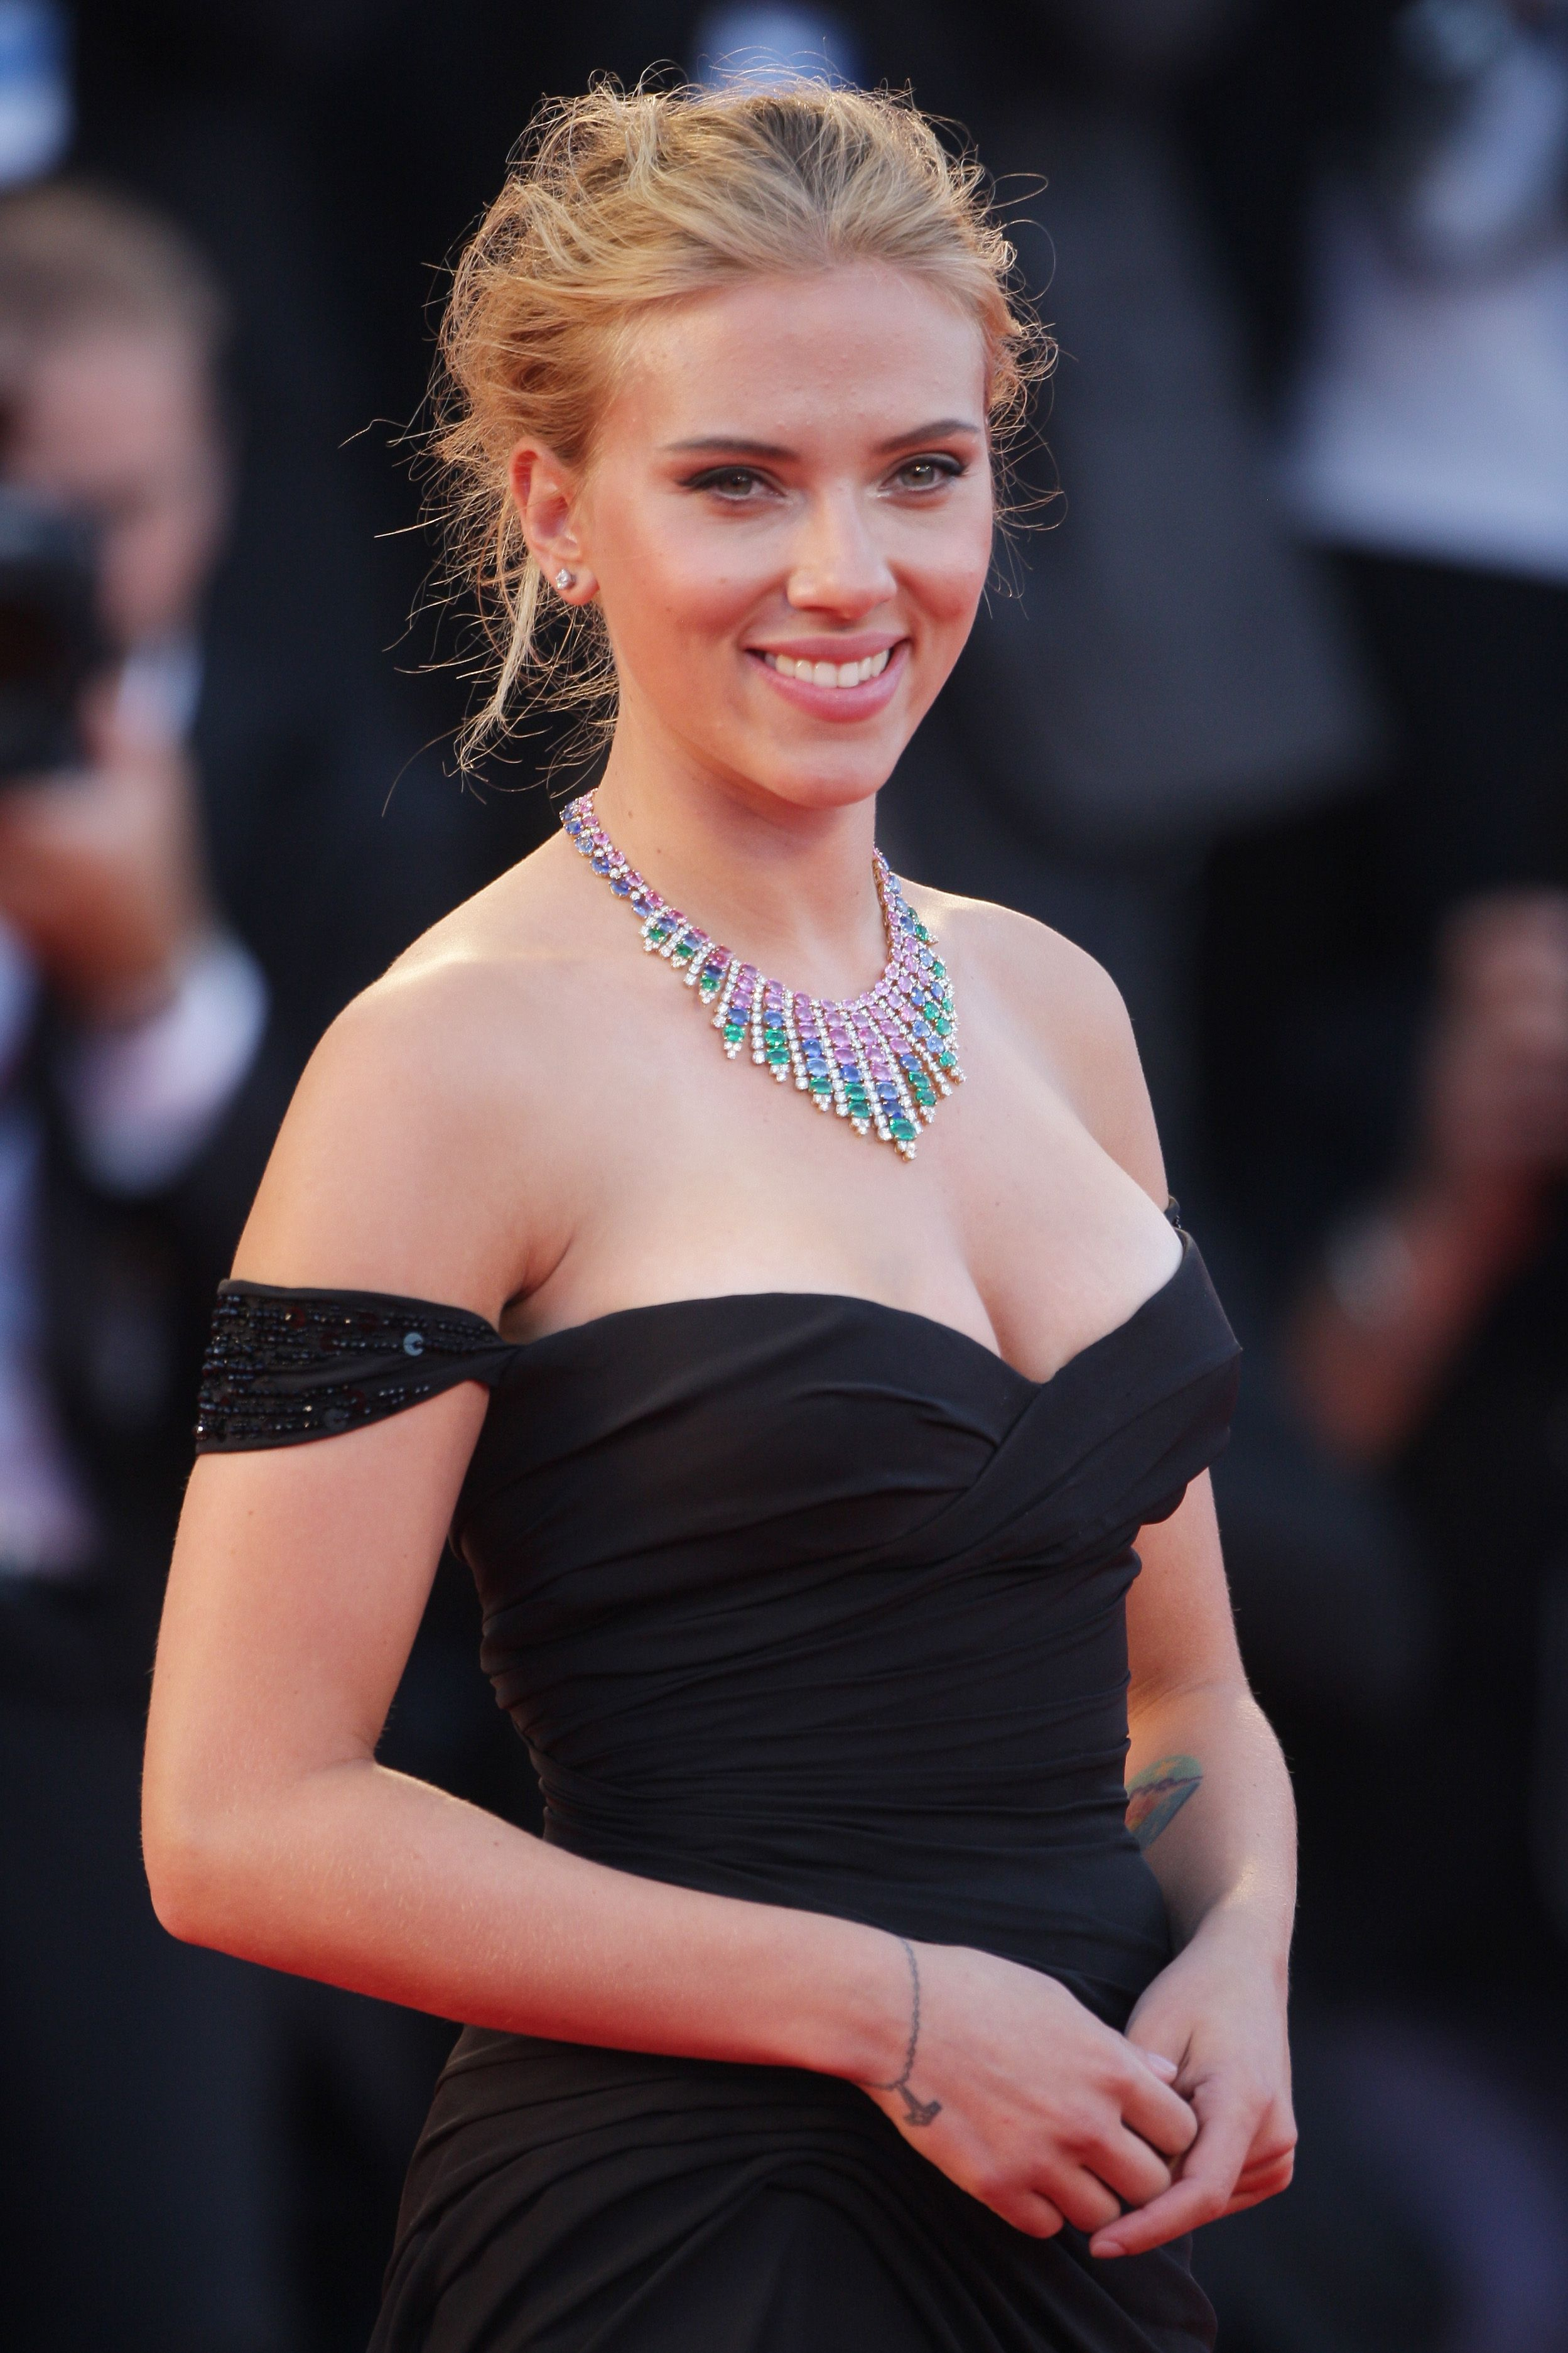 Scarlett Johansson Walks Back on Casting Controversy Interview After Twitter Drags Her